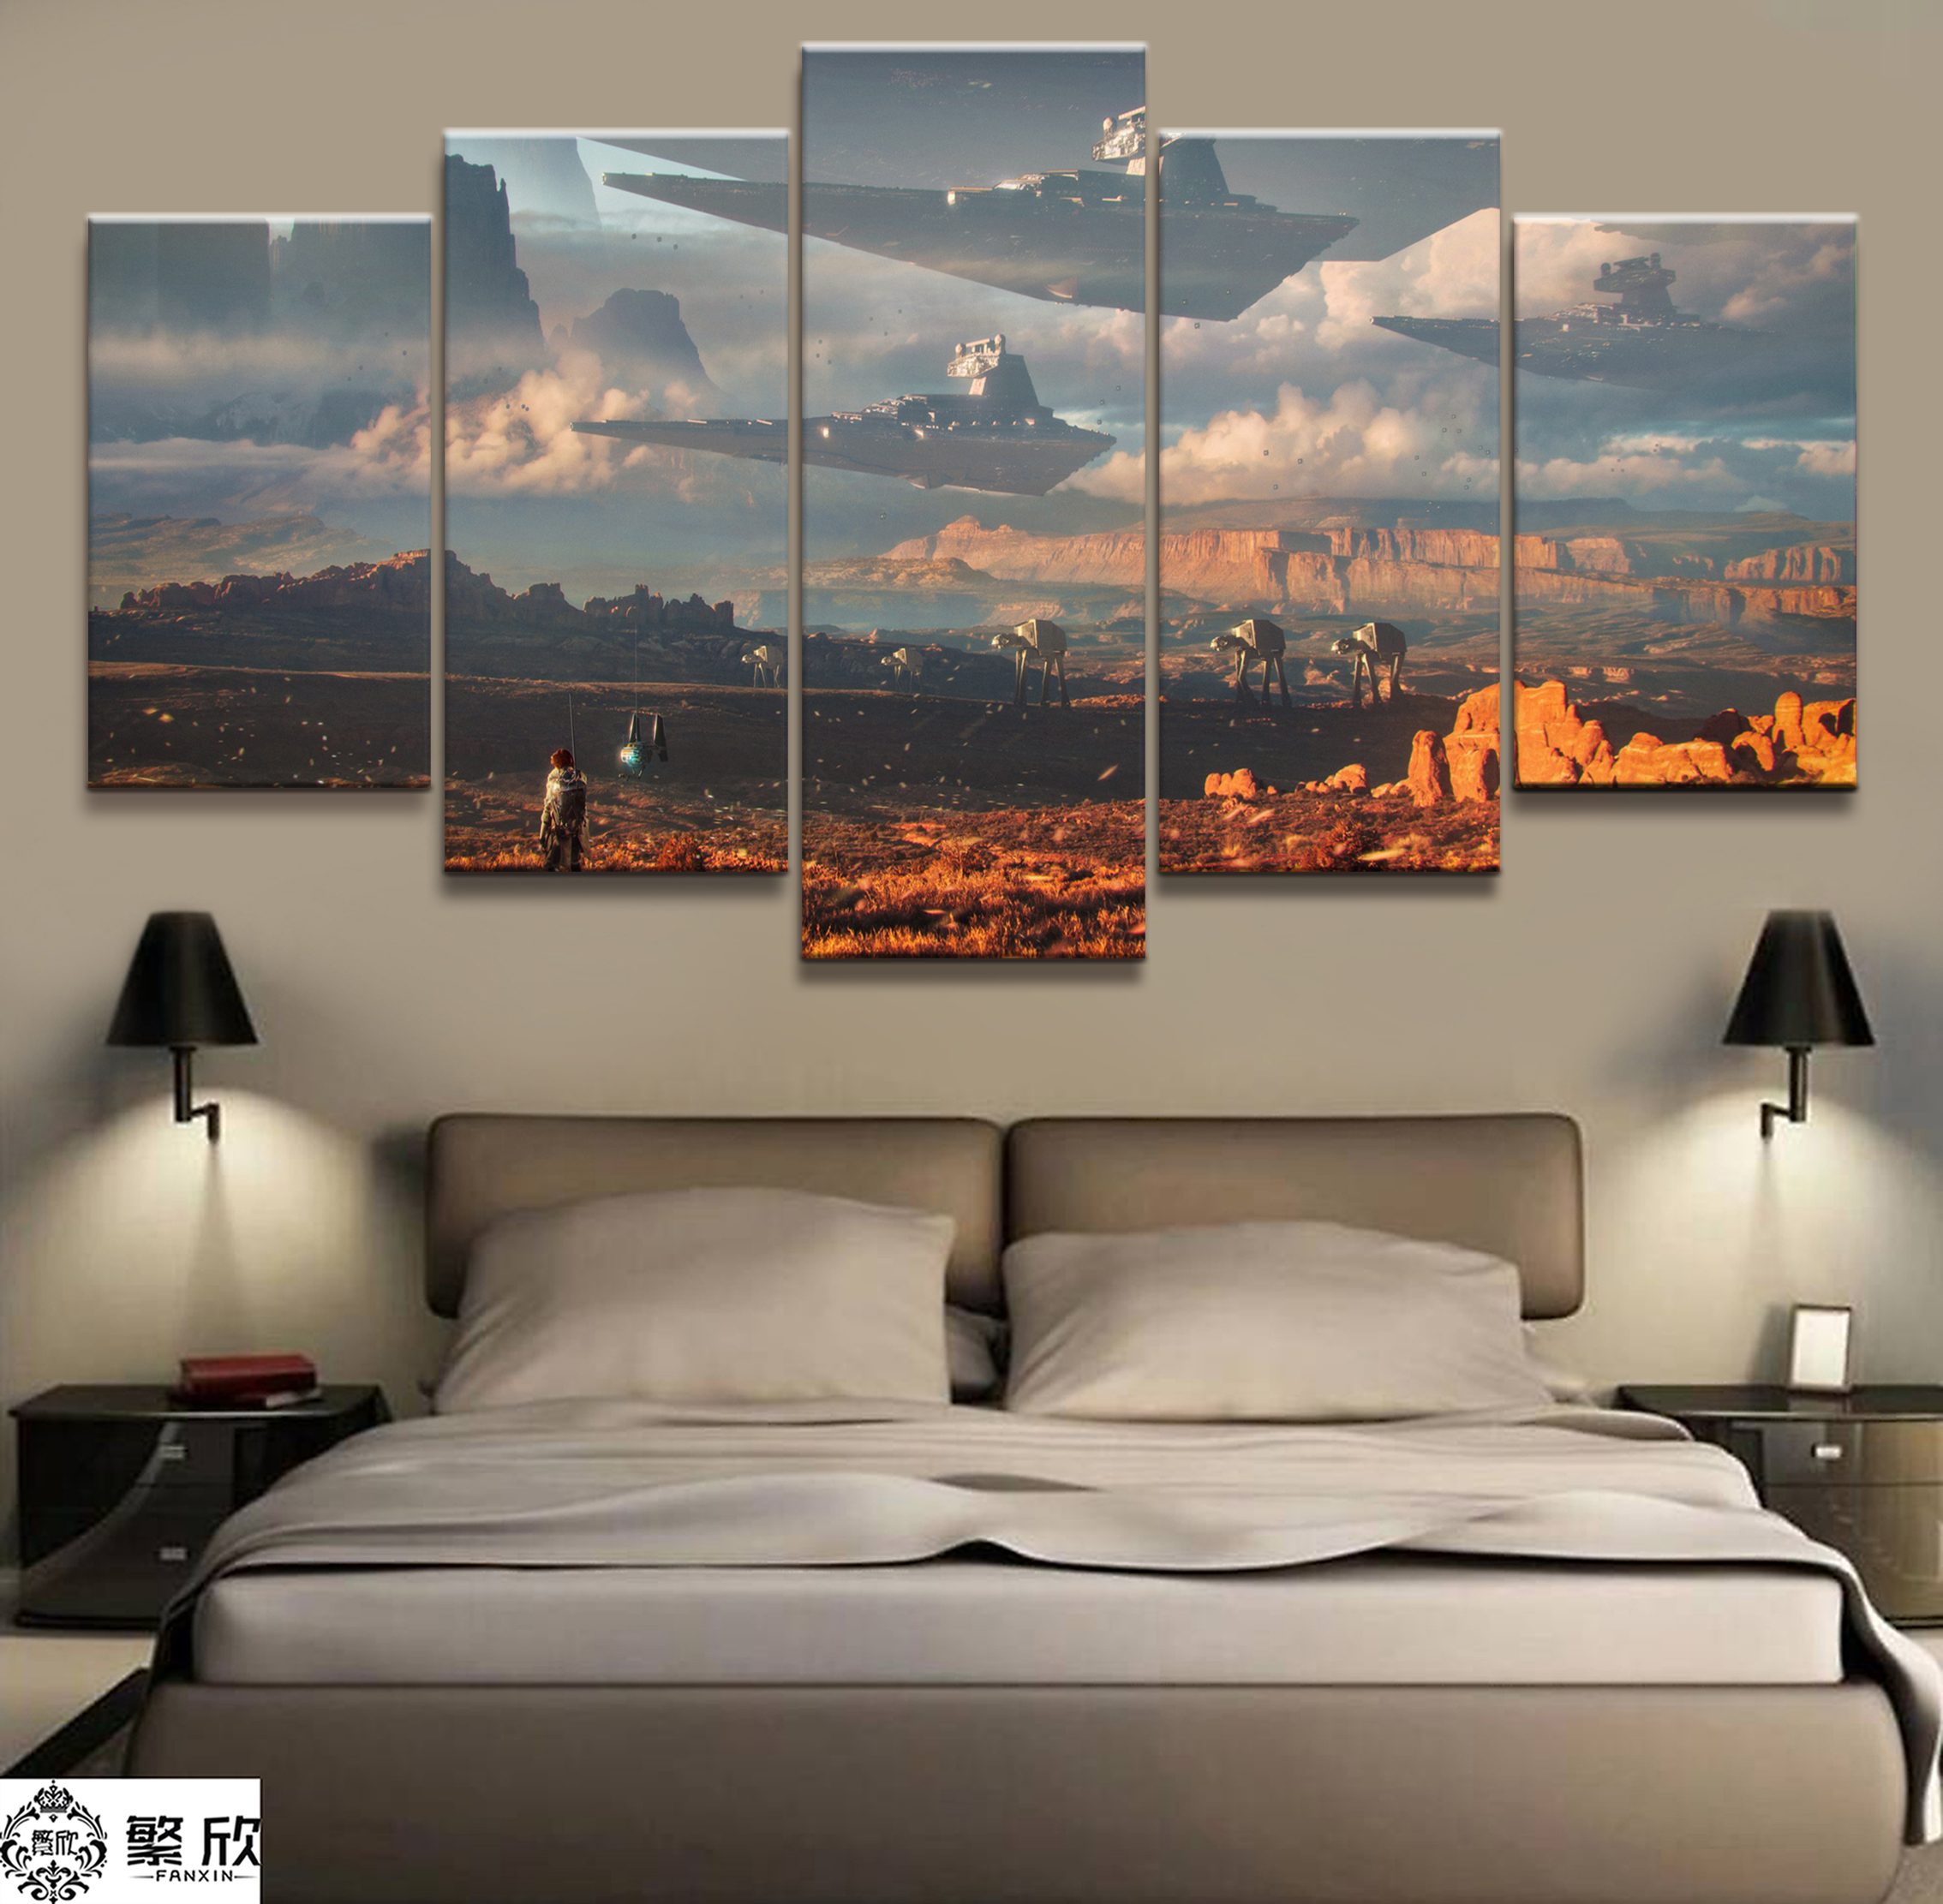 5 Pieces Painting Star War Movie Poster Modern Home Decor For Living Room Wall Canvas Print Pictures Painting Canvas Wholesale image